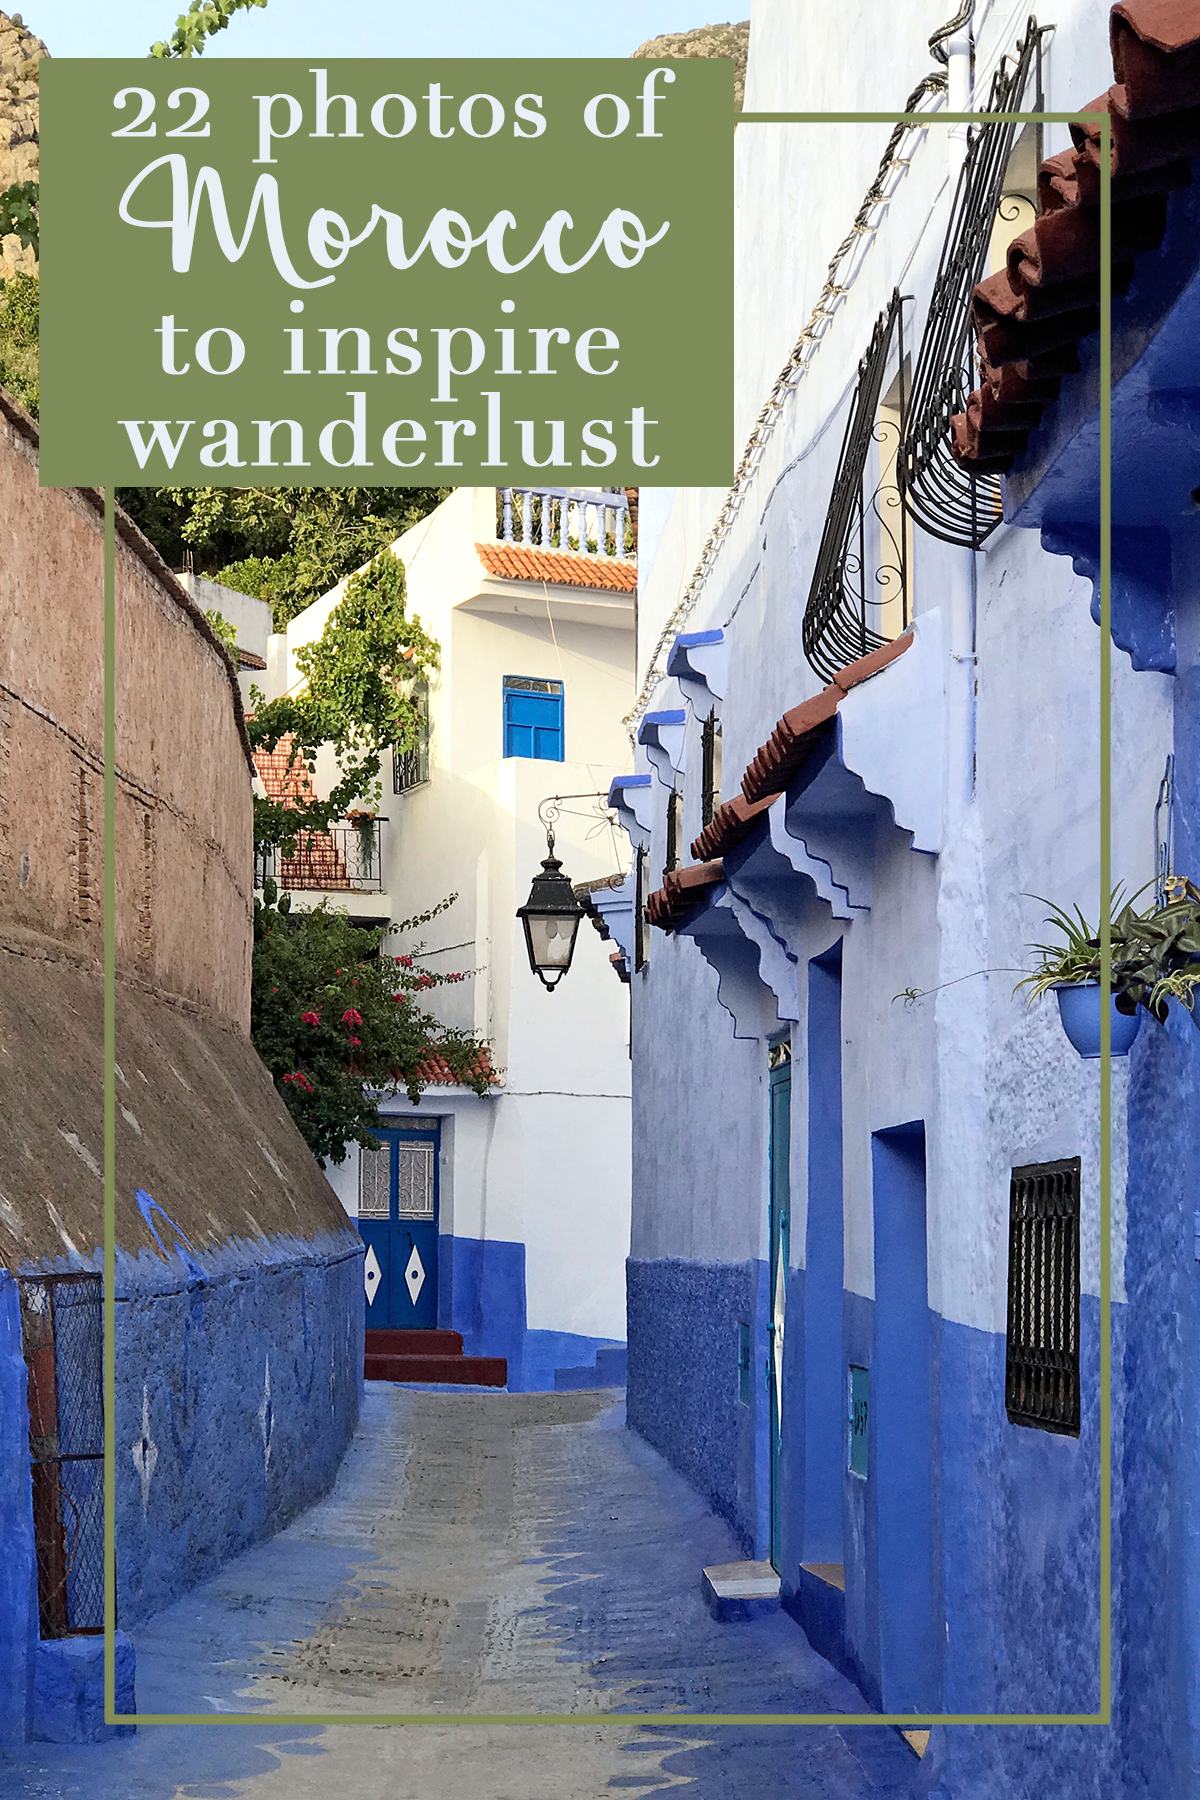 Photos of Morocco to Inspire Wanderlust